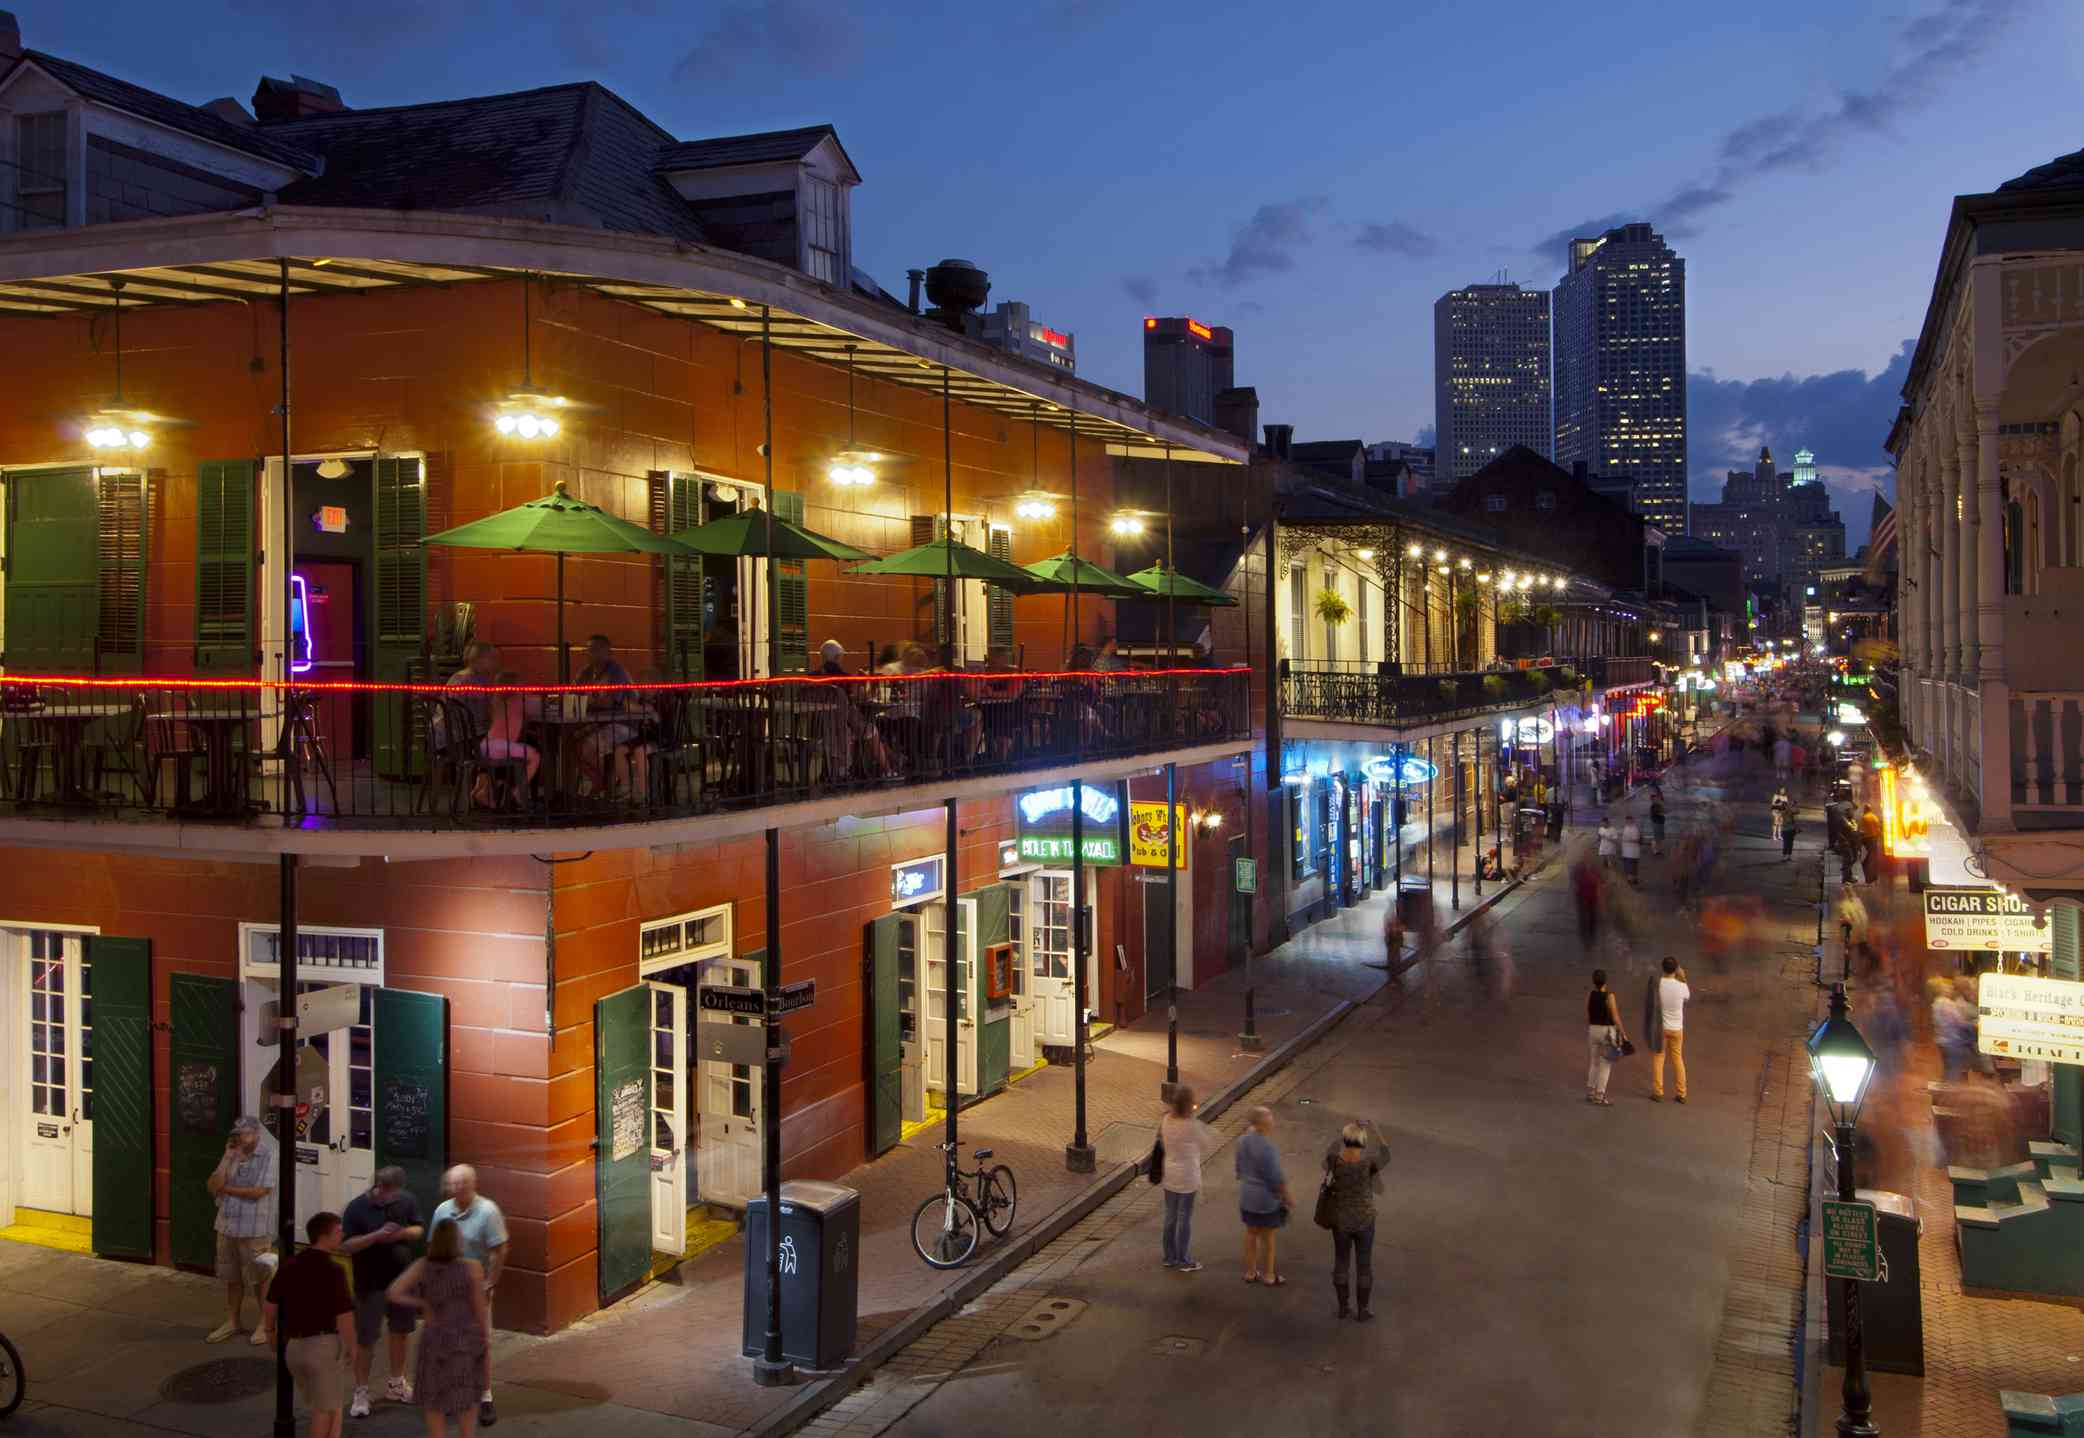 People walking and dining on Bourbon Street at night in New Orleans